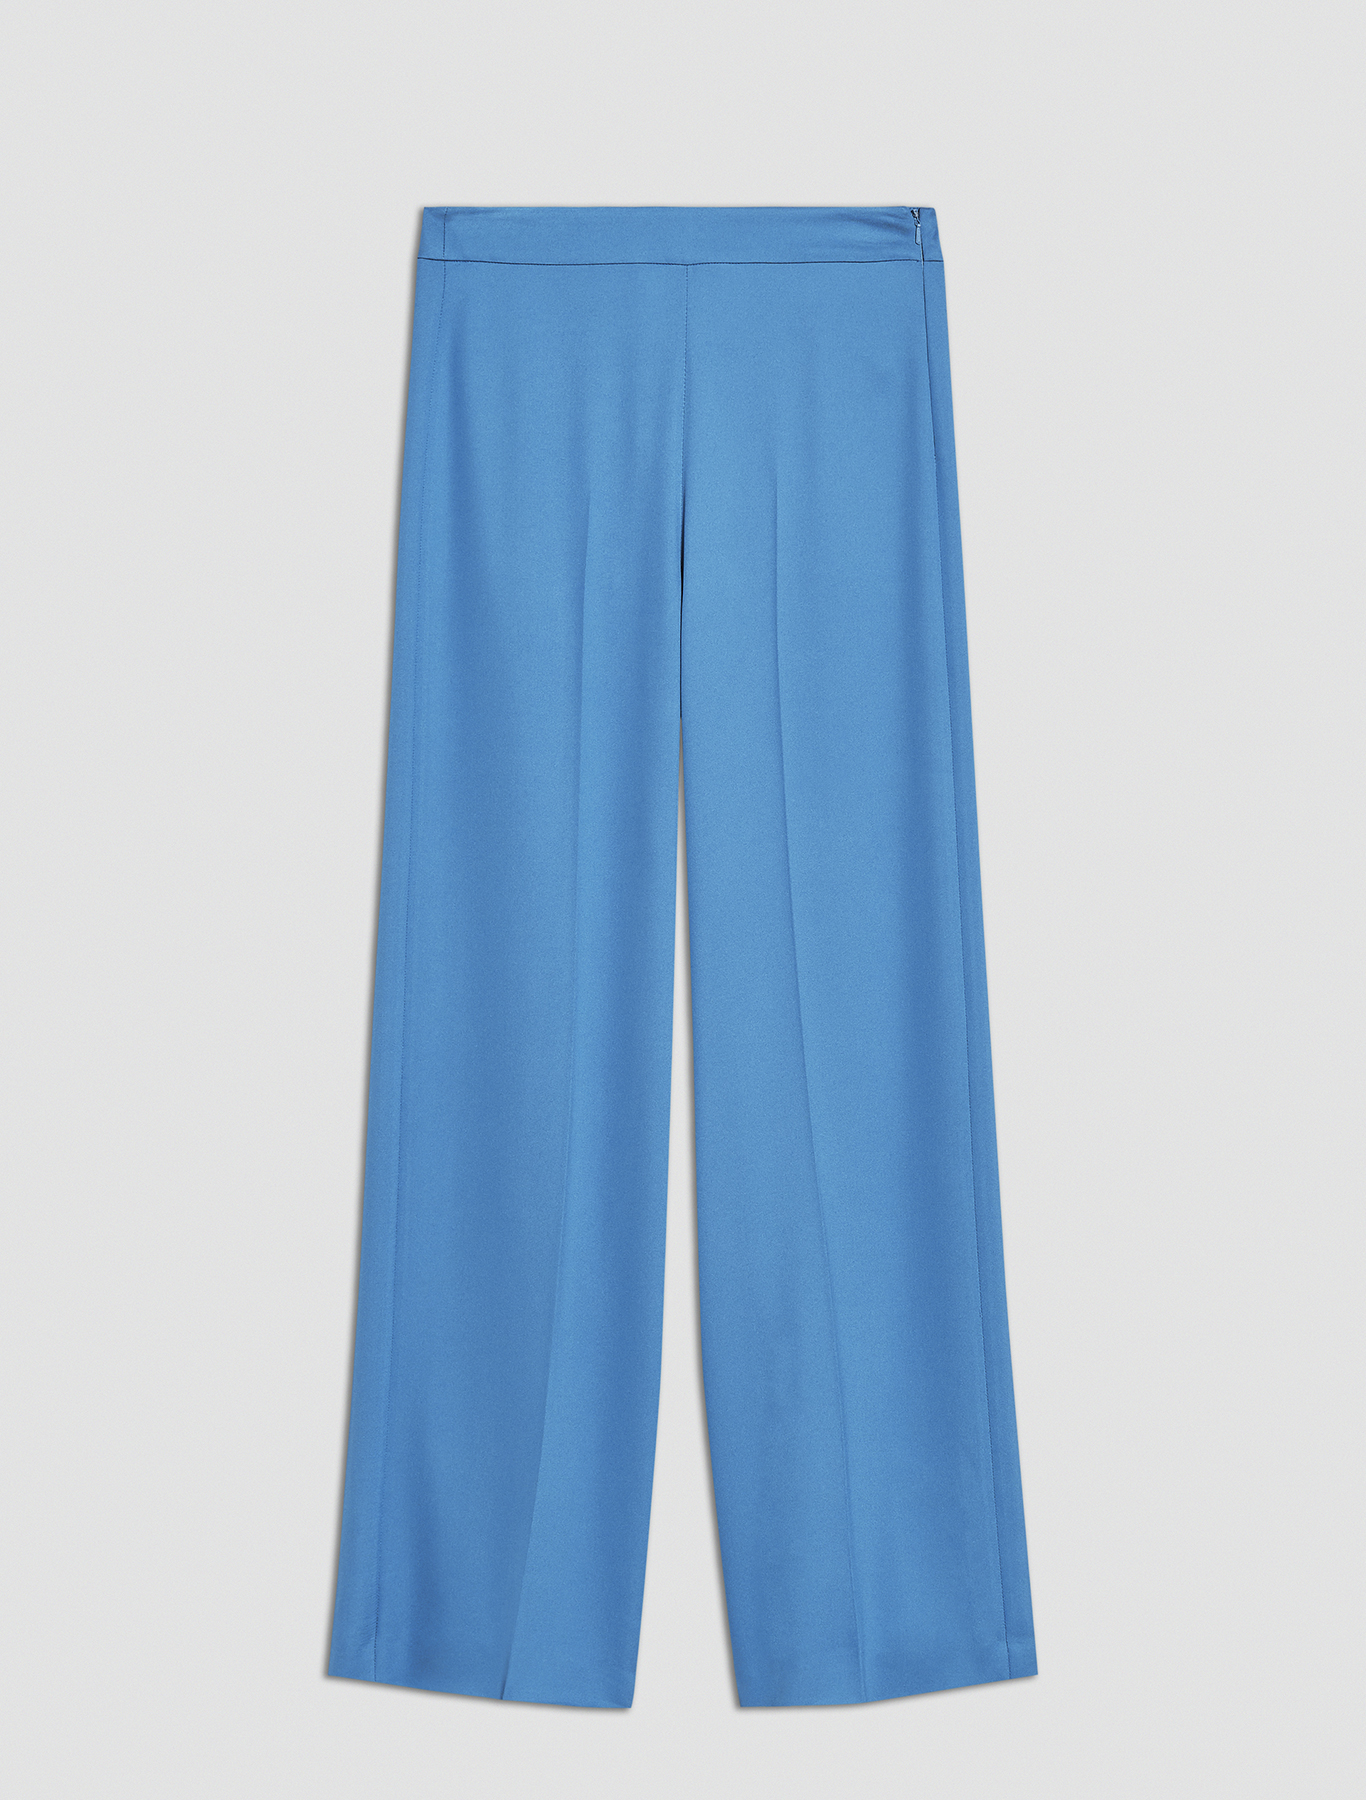 Flowing cady trousers - china blue - pennyblack